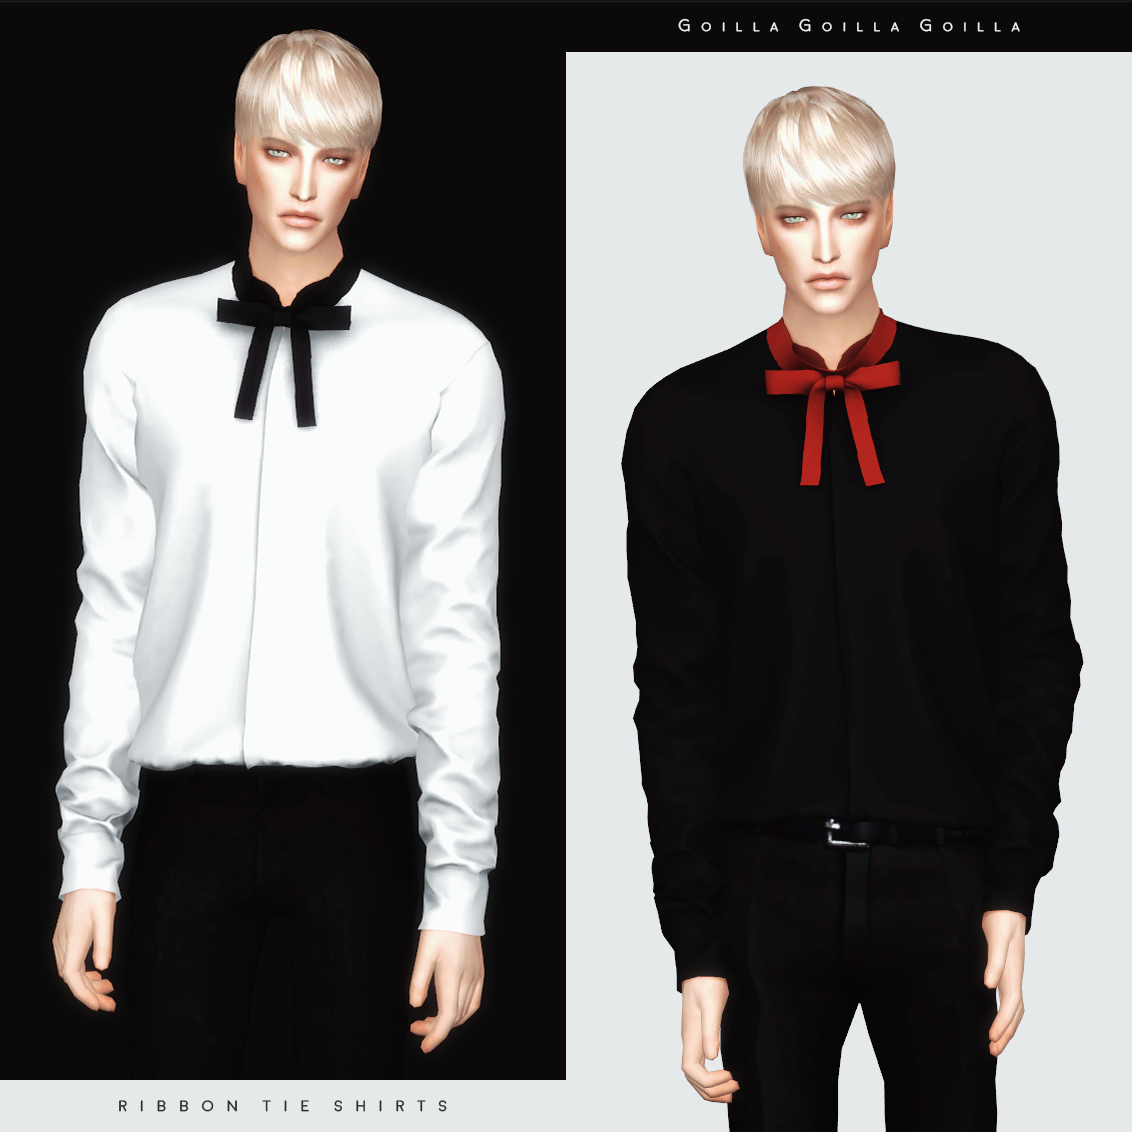 Ribbon Tie Shirts by gorillax3